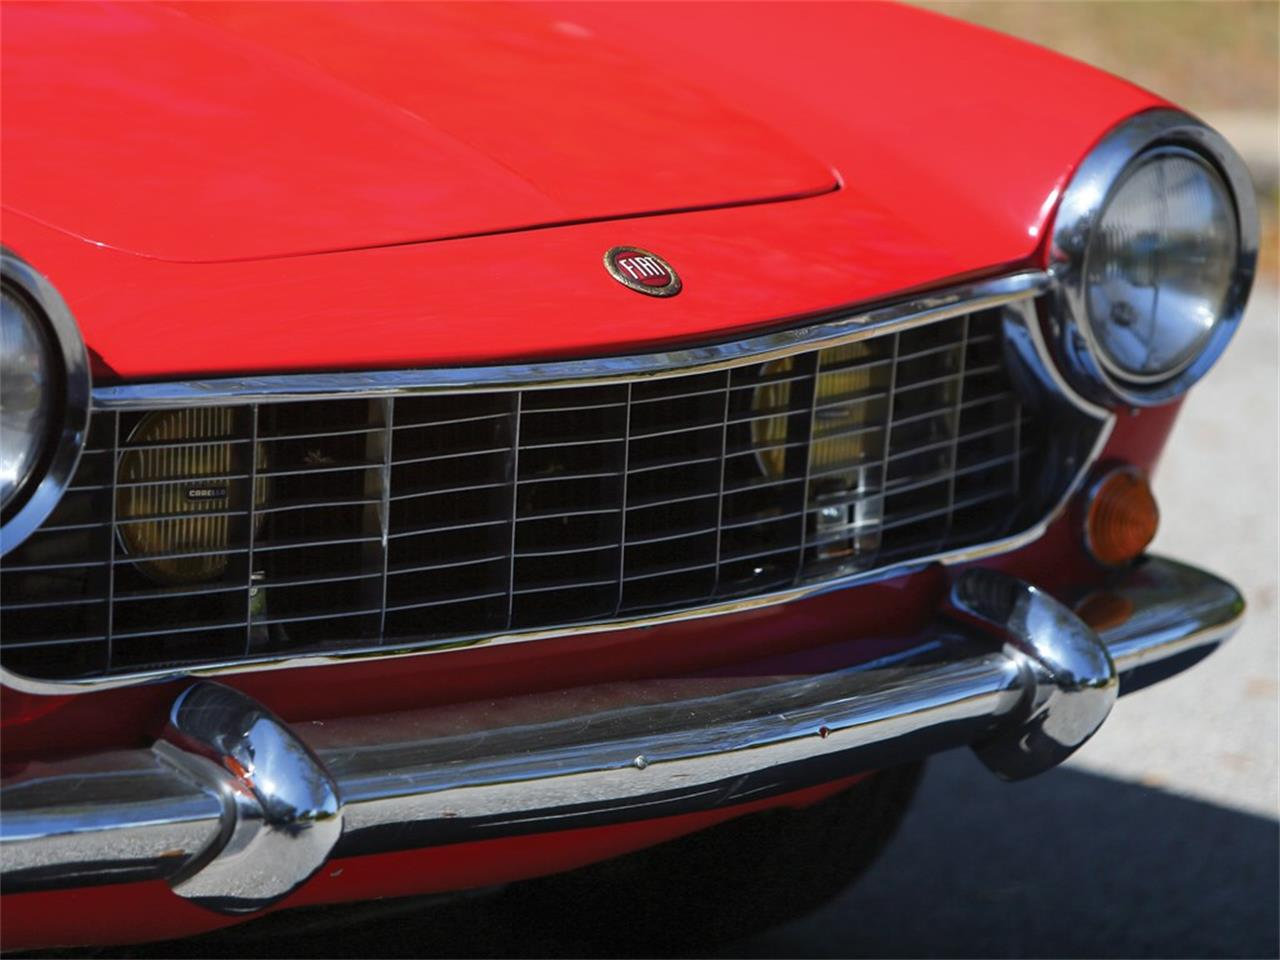 1965 Fiat Abarth 1500 for sale in Fort Lauderdale, FL – photo 6